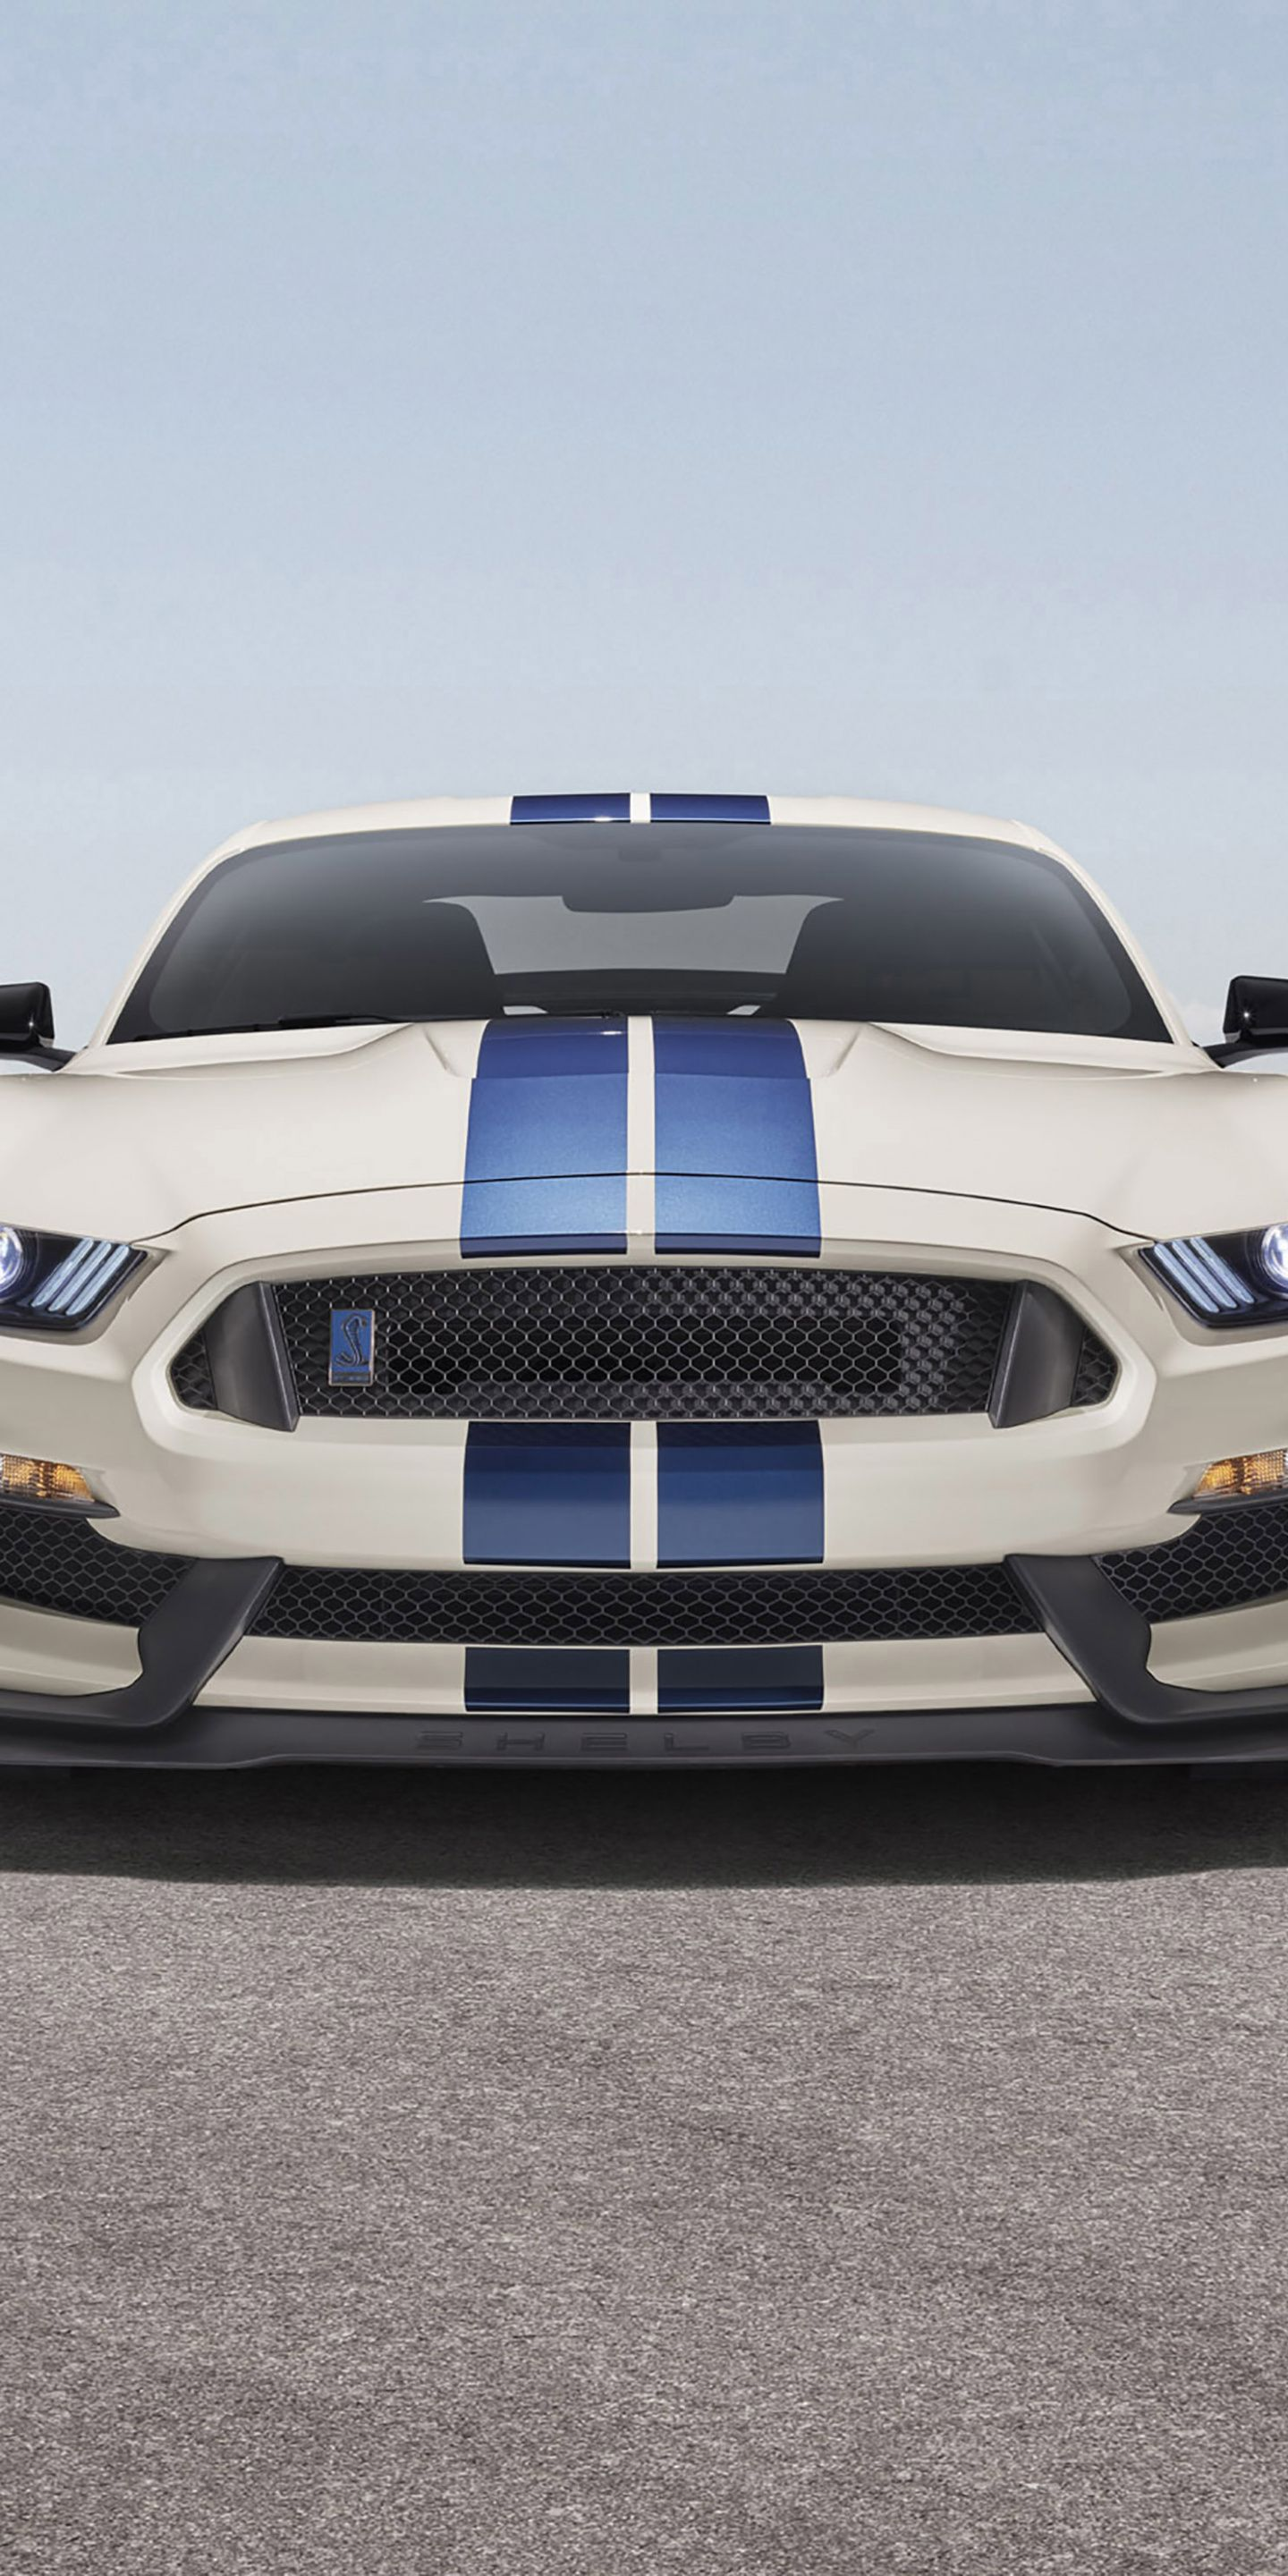 1440x2880 White Ford Mustang Shelby Gt350 Wallpaper Ford Mustang Shelby Ford Mustang Mustang Shelby